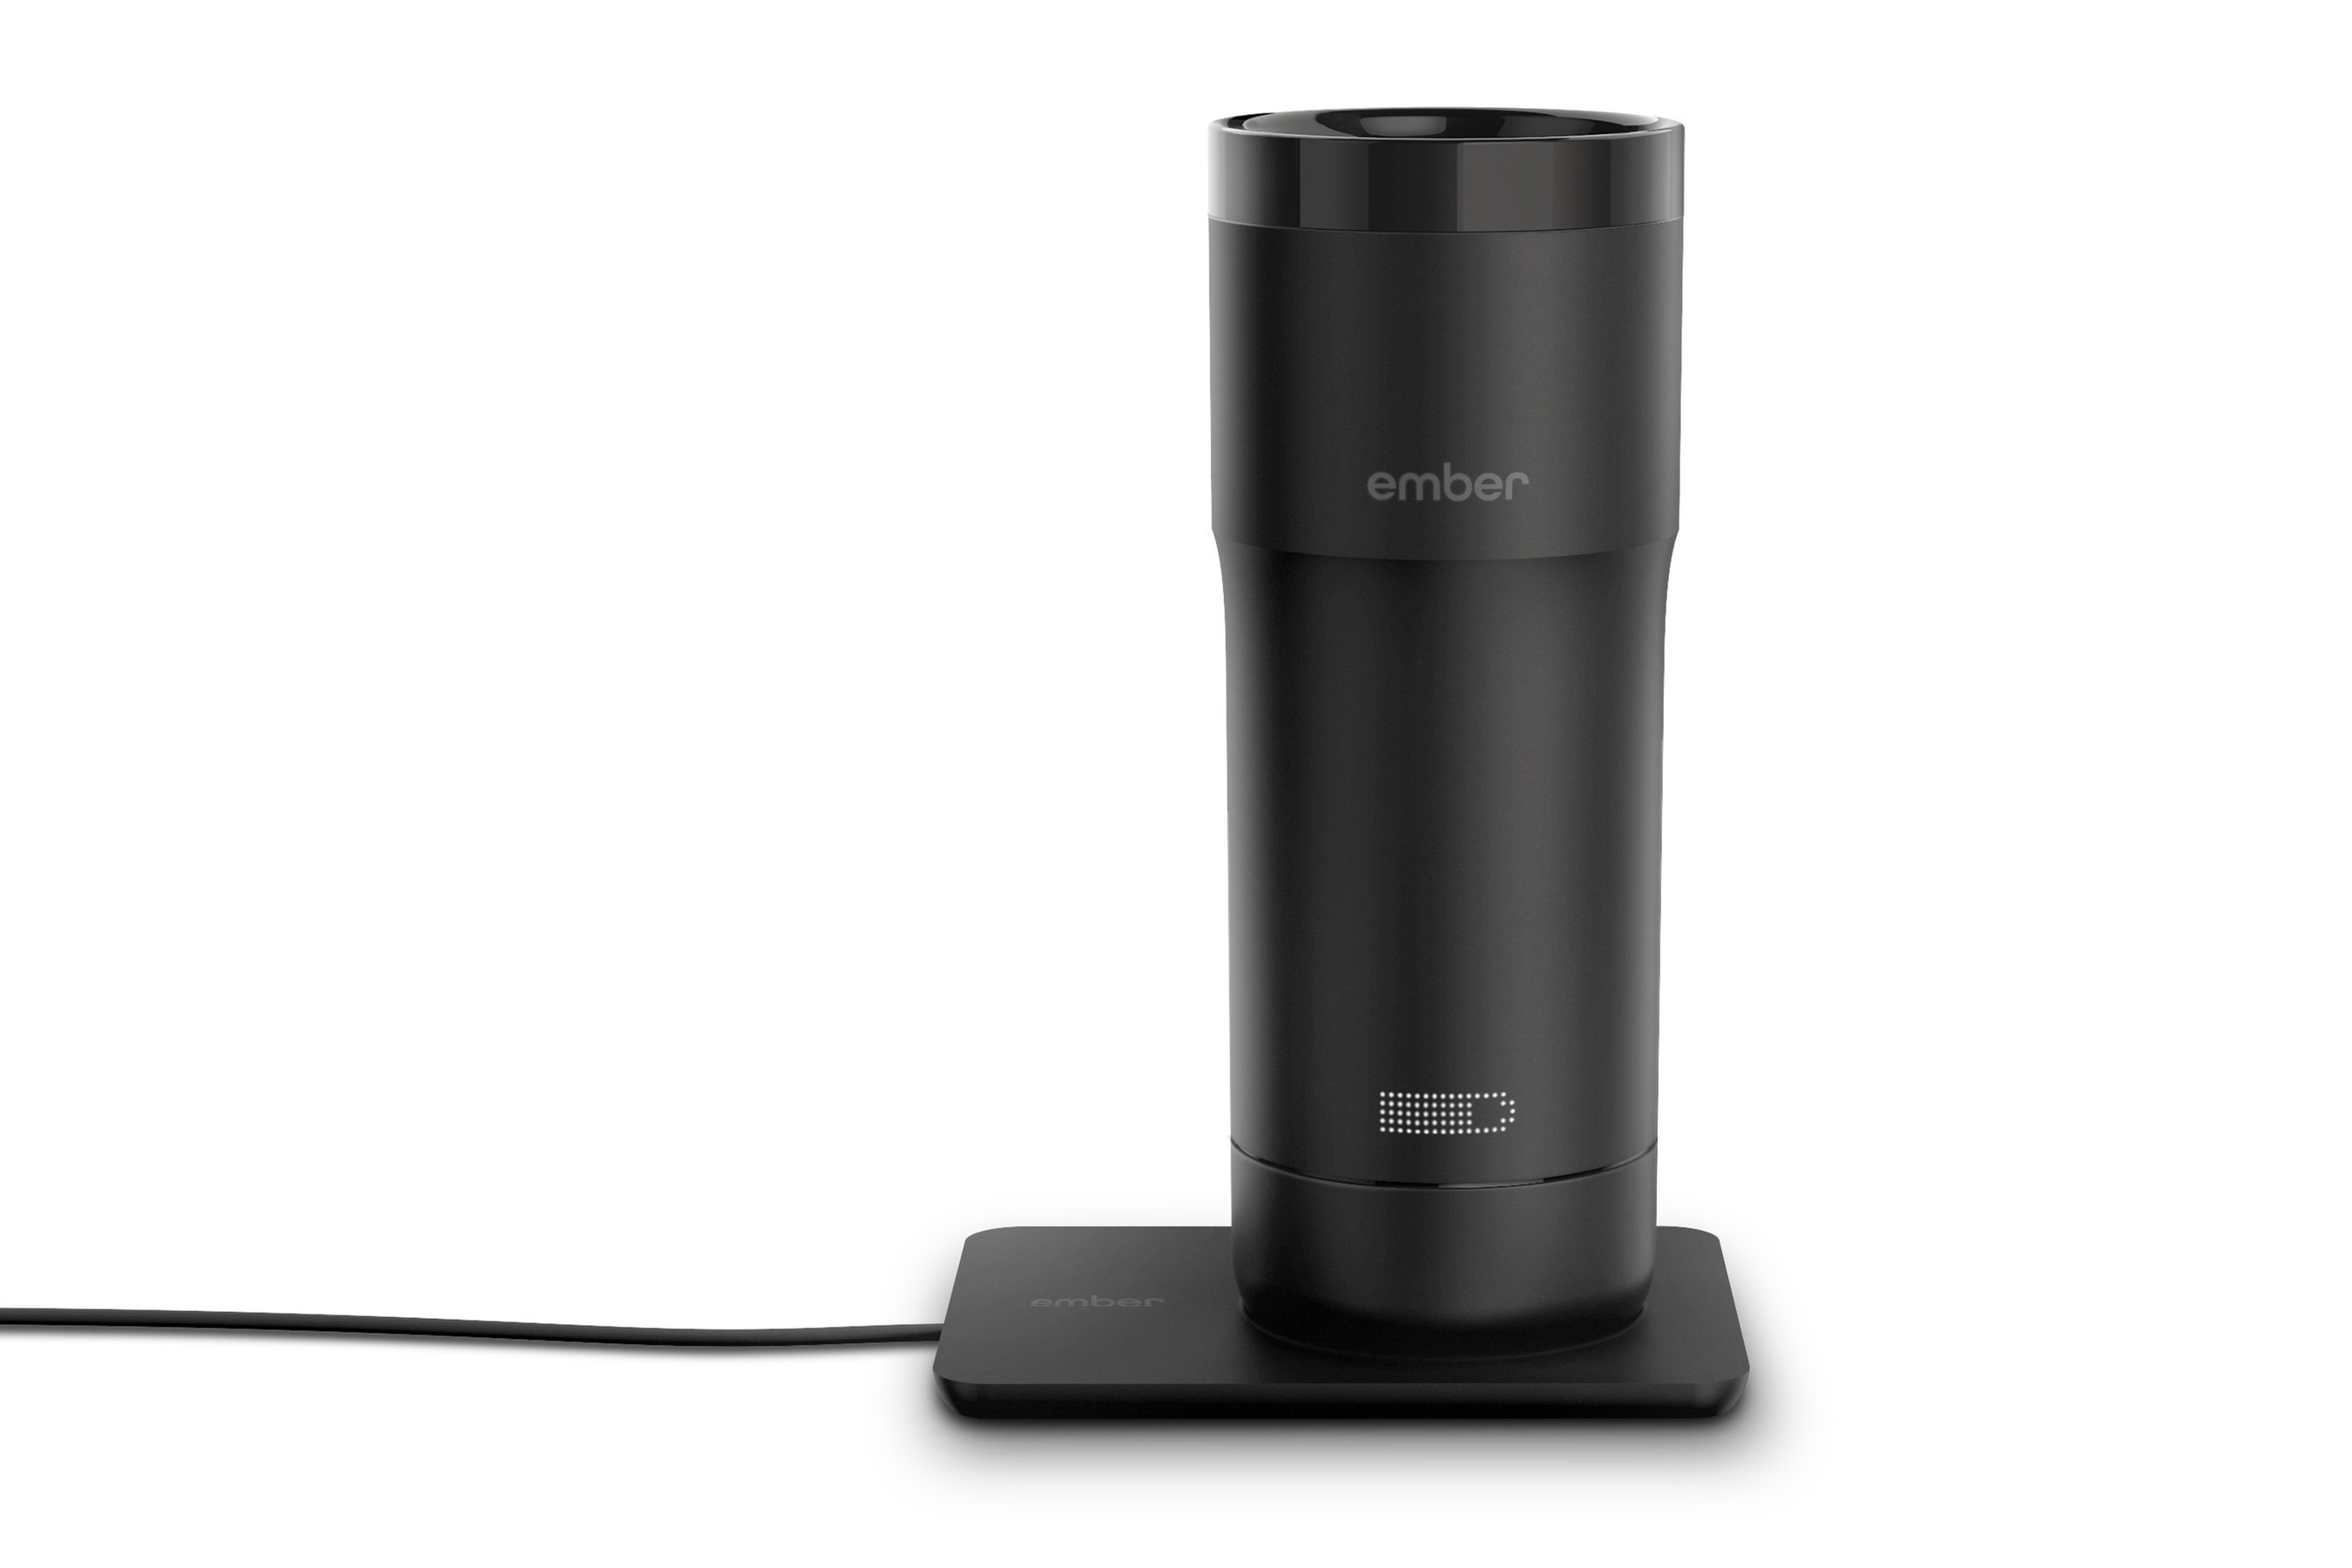 Ember Has Introduced The World S Most Advanced Coffee Mug Using Active Heating And Phase Change